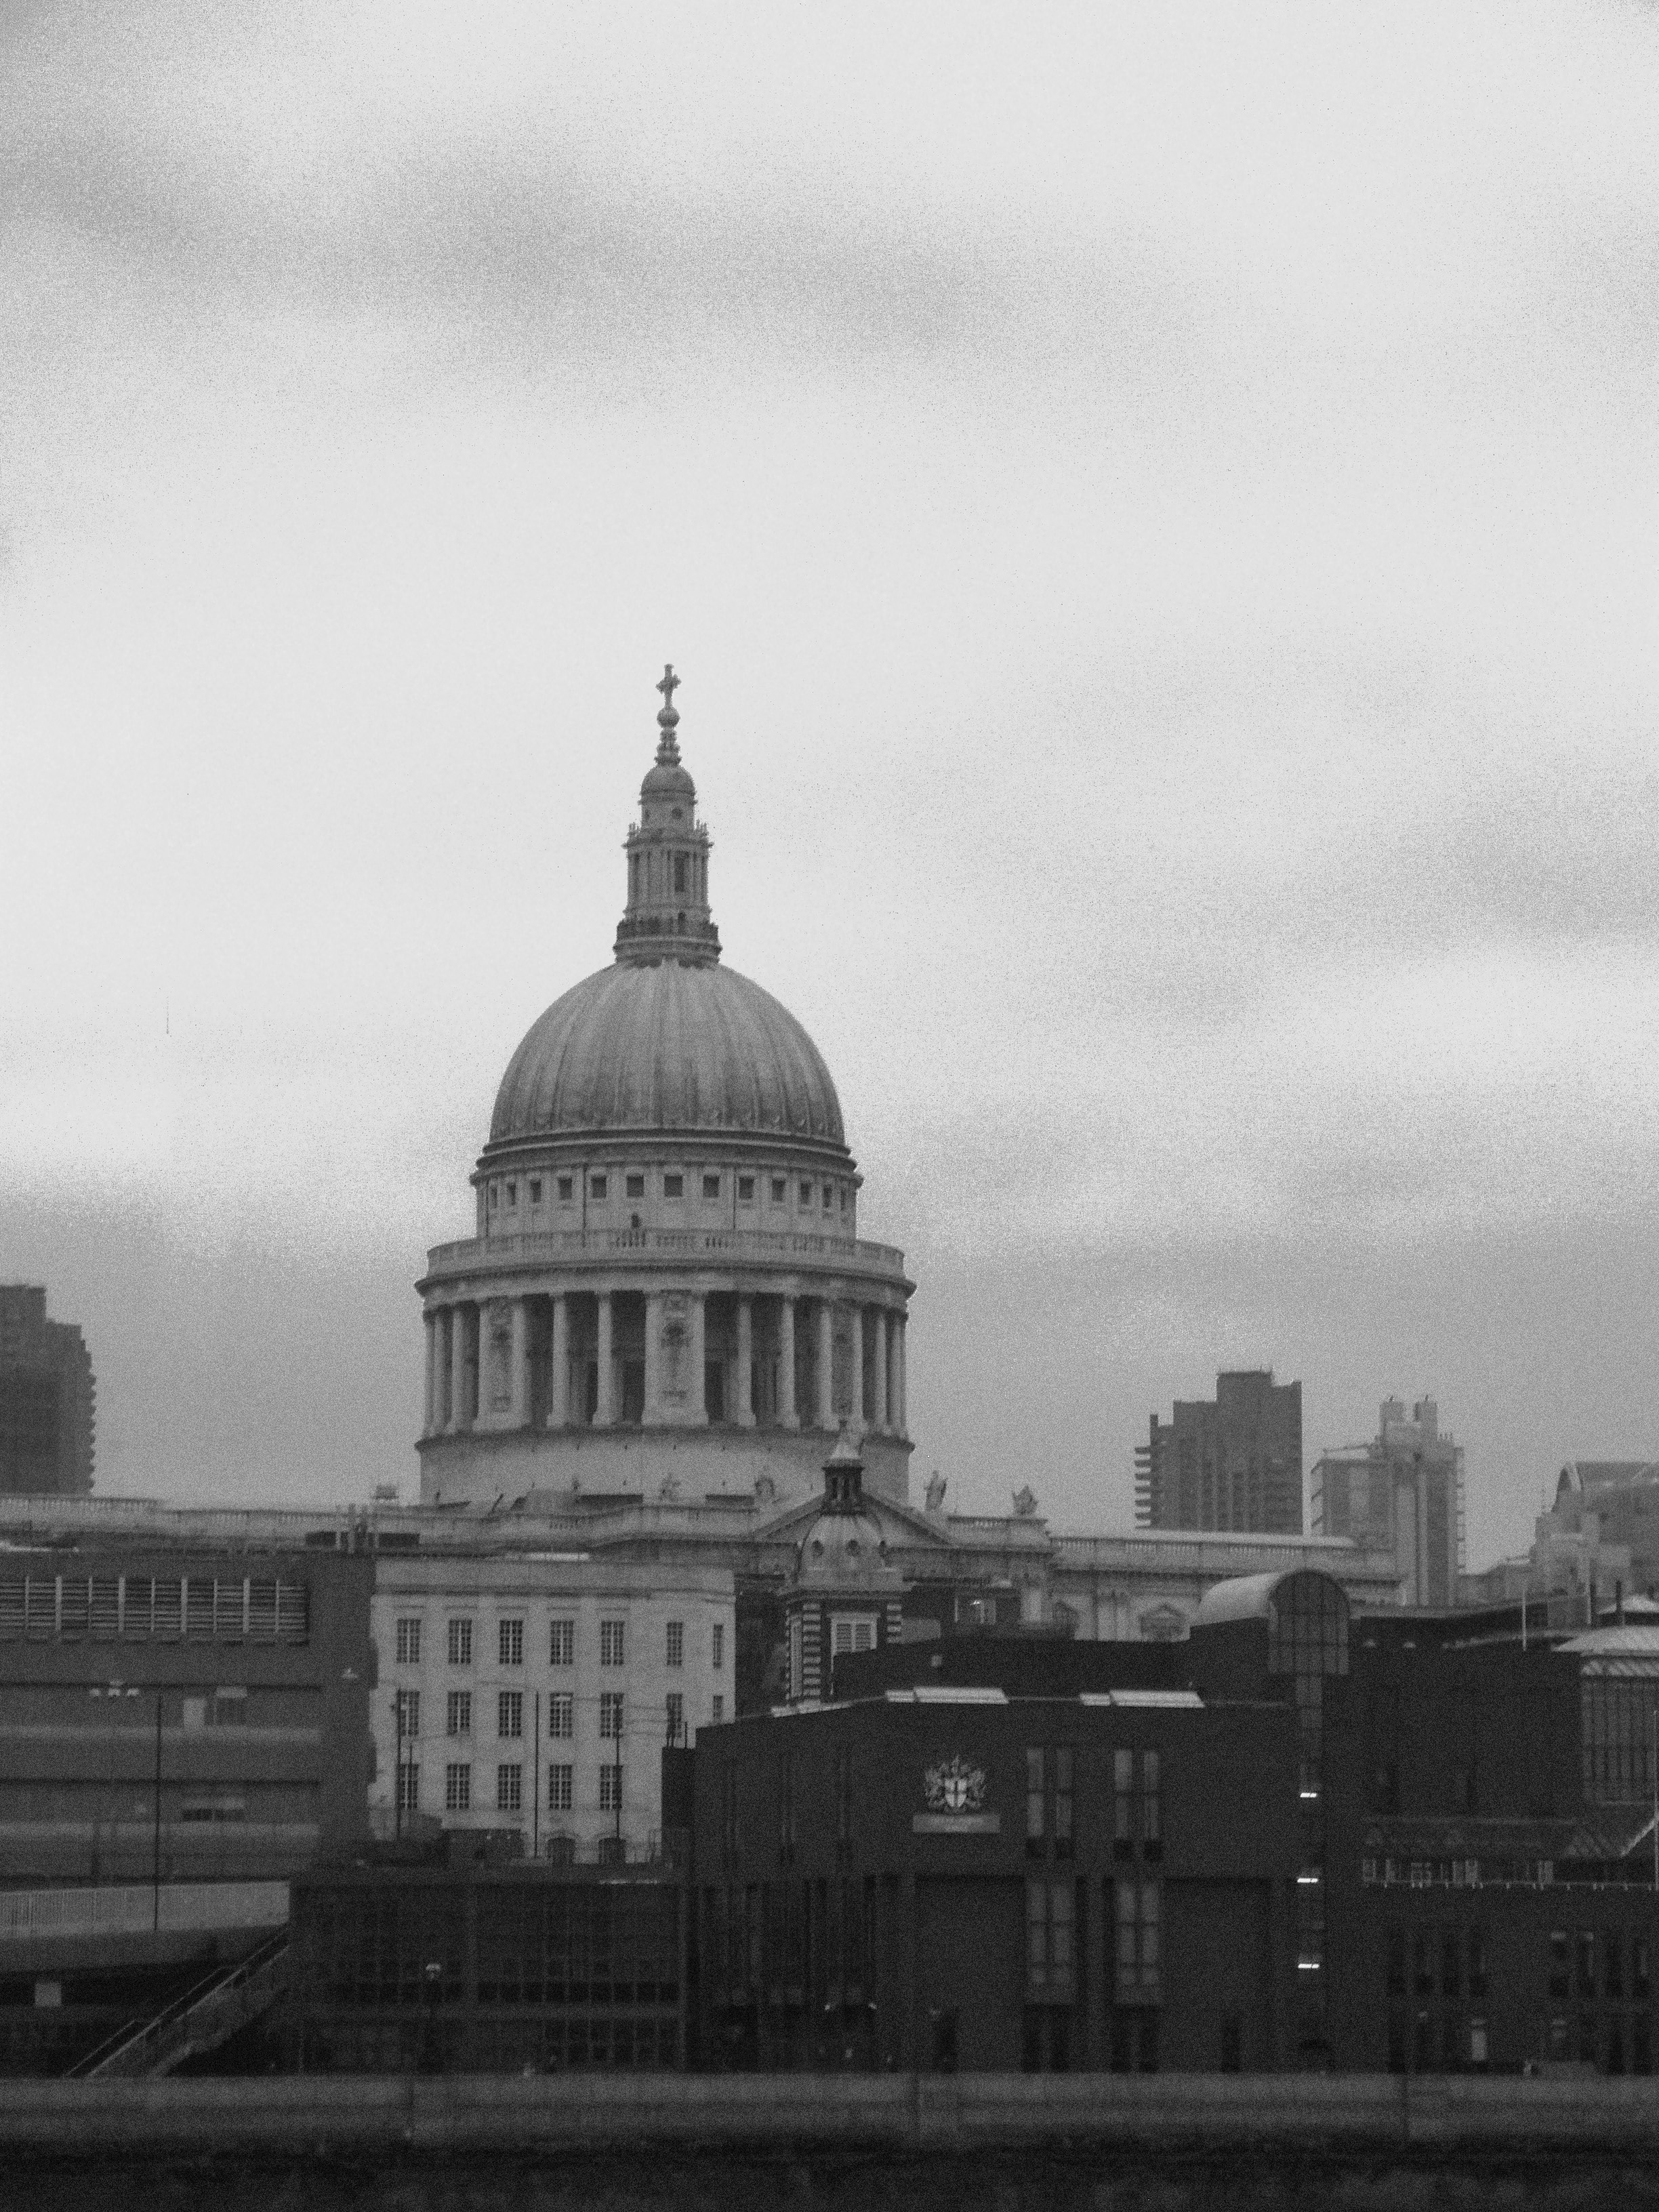 gritty black and white image of the famous london landmark